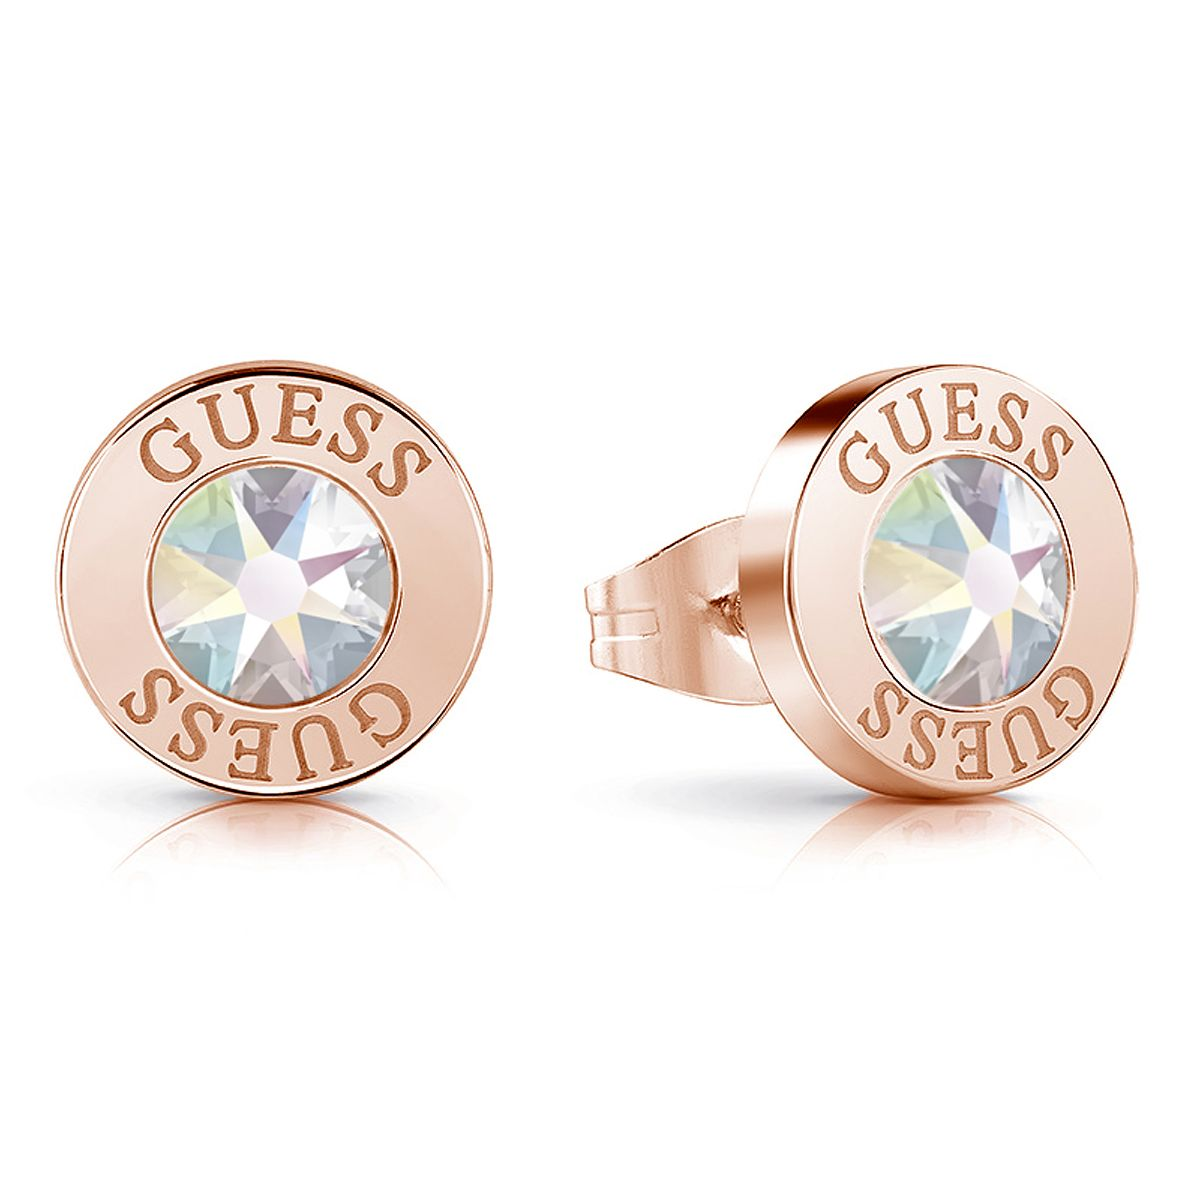 Guess Rose Gold Tone Swarovski Crystal Stud Earrings - Product number 4103777